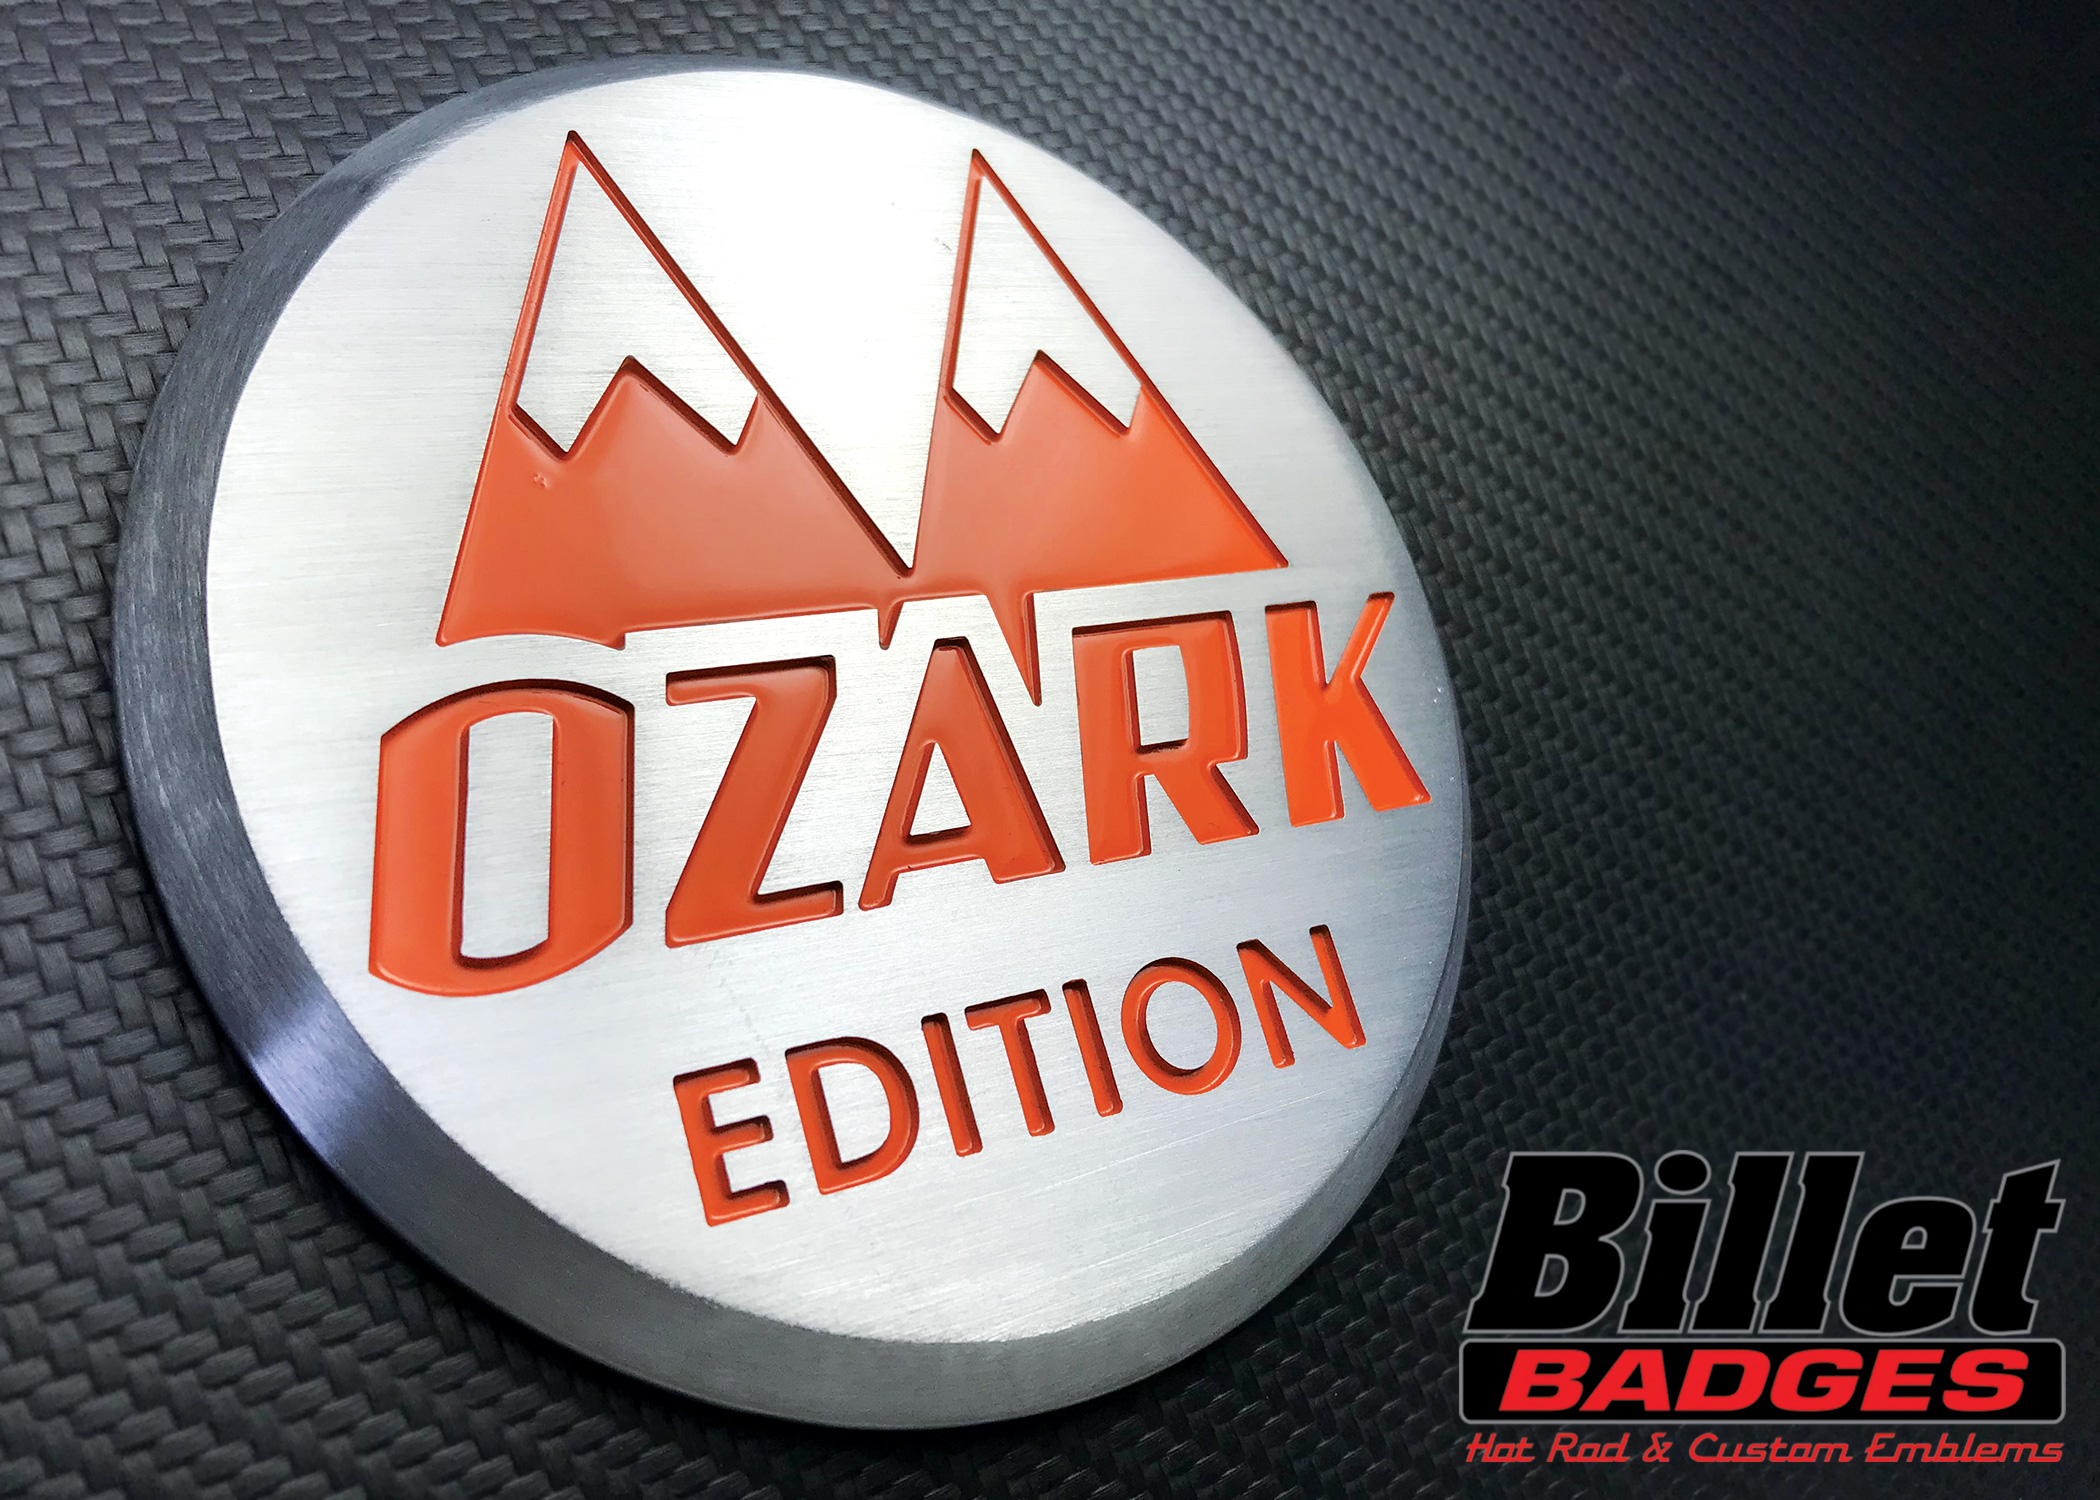 ozark_edition_medallion.jpg